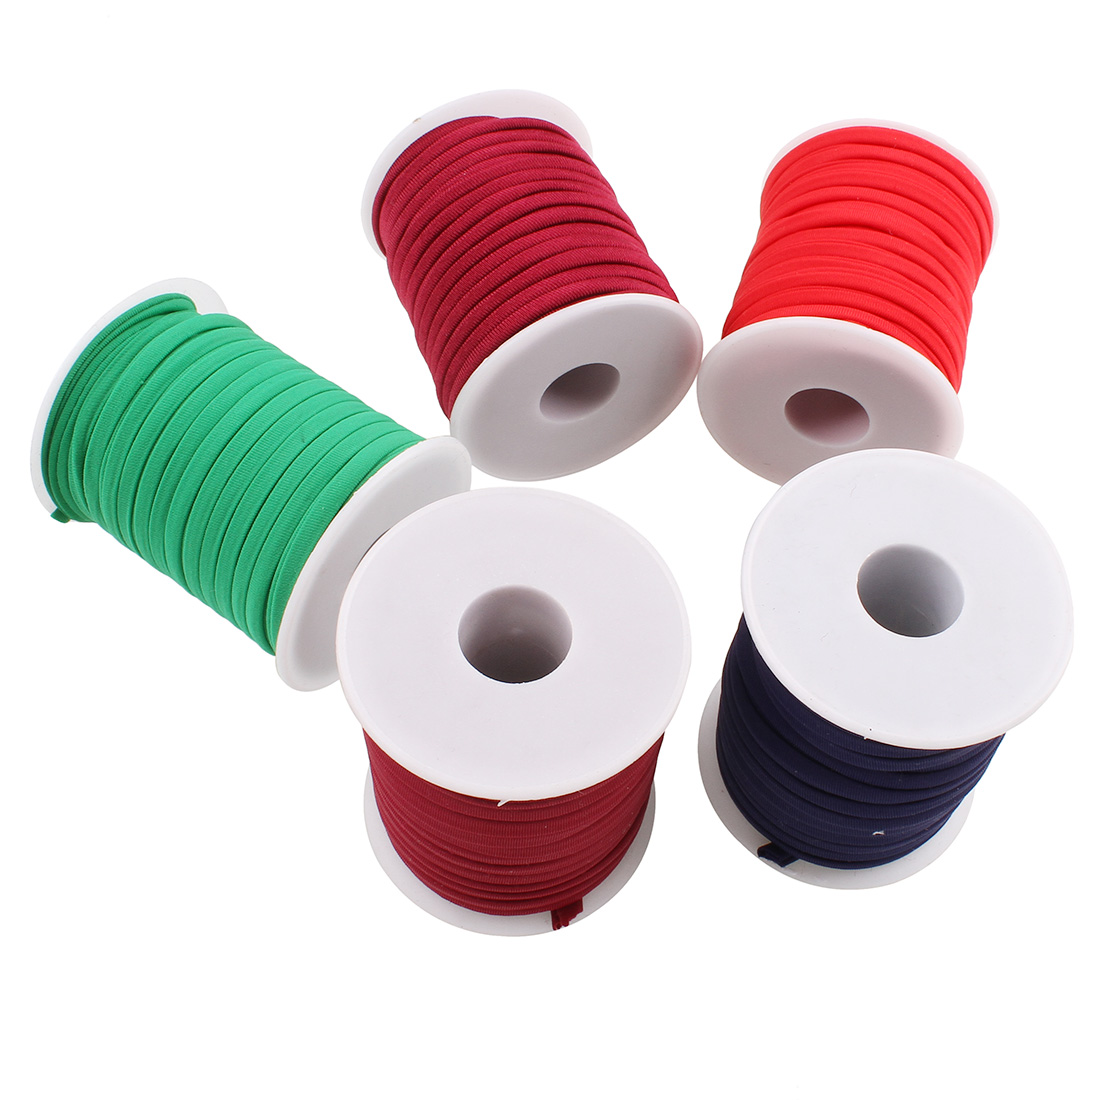 20yards Spool Rope Thread String 6x2mm Wide Flat Elastic Jewelry Making Polyester Cord Rubber Bands Knitted Hanger Loop